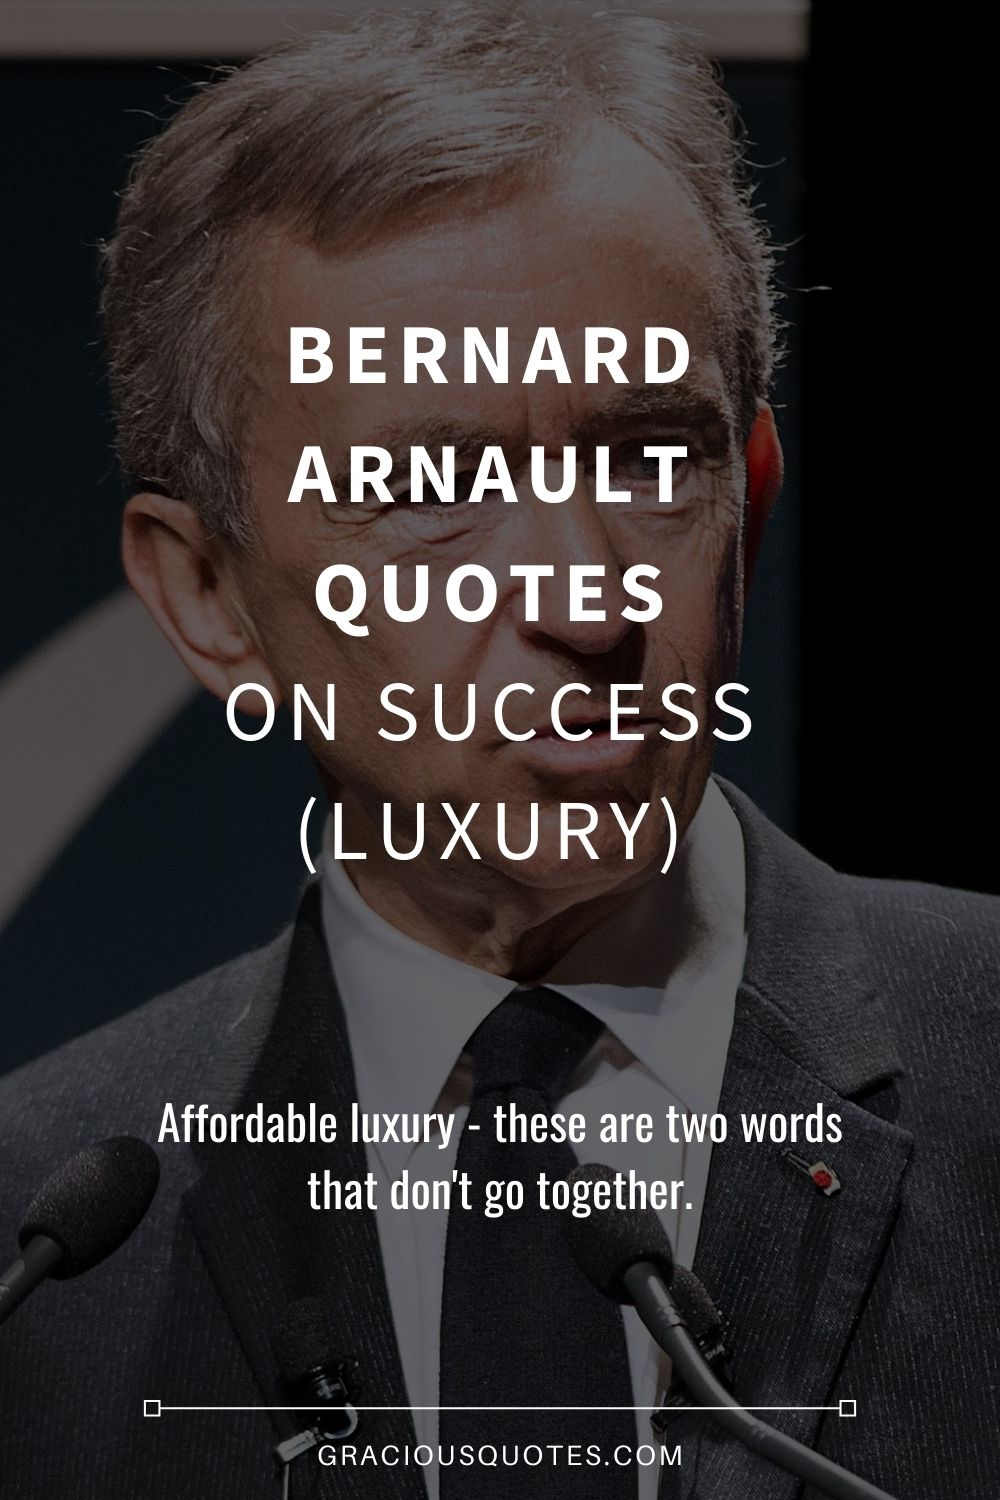 Bernard Arnault Quotes on Success (LUXURY) - Gracious Quotes